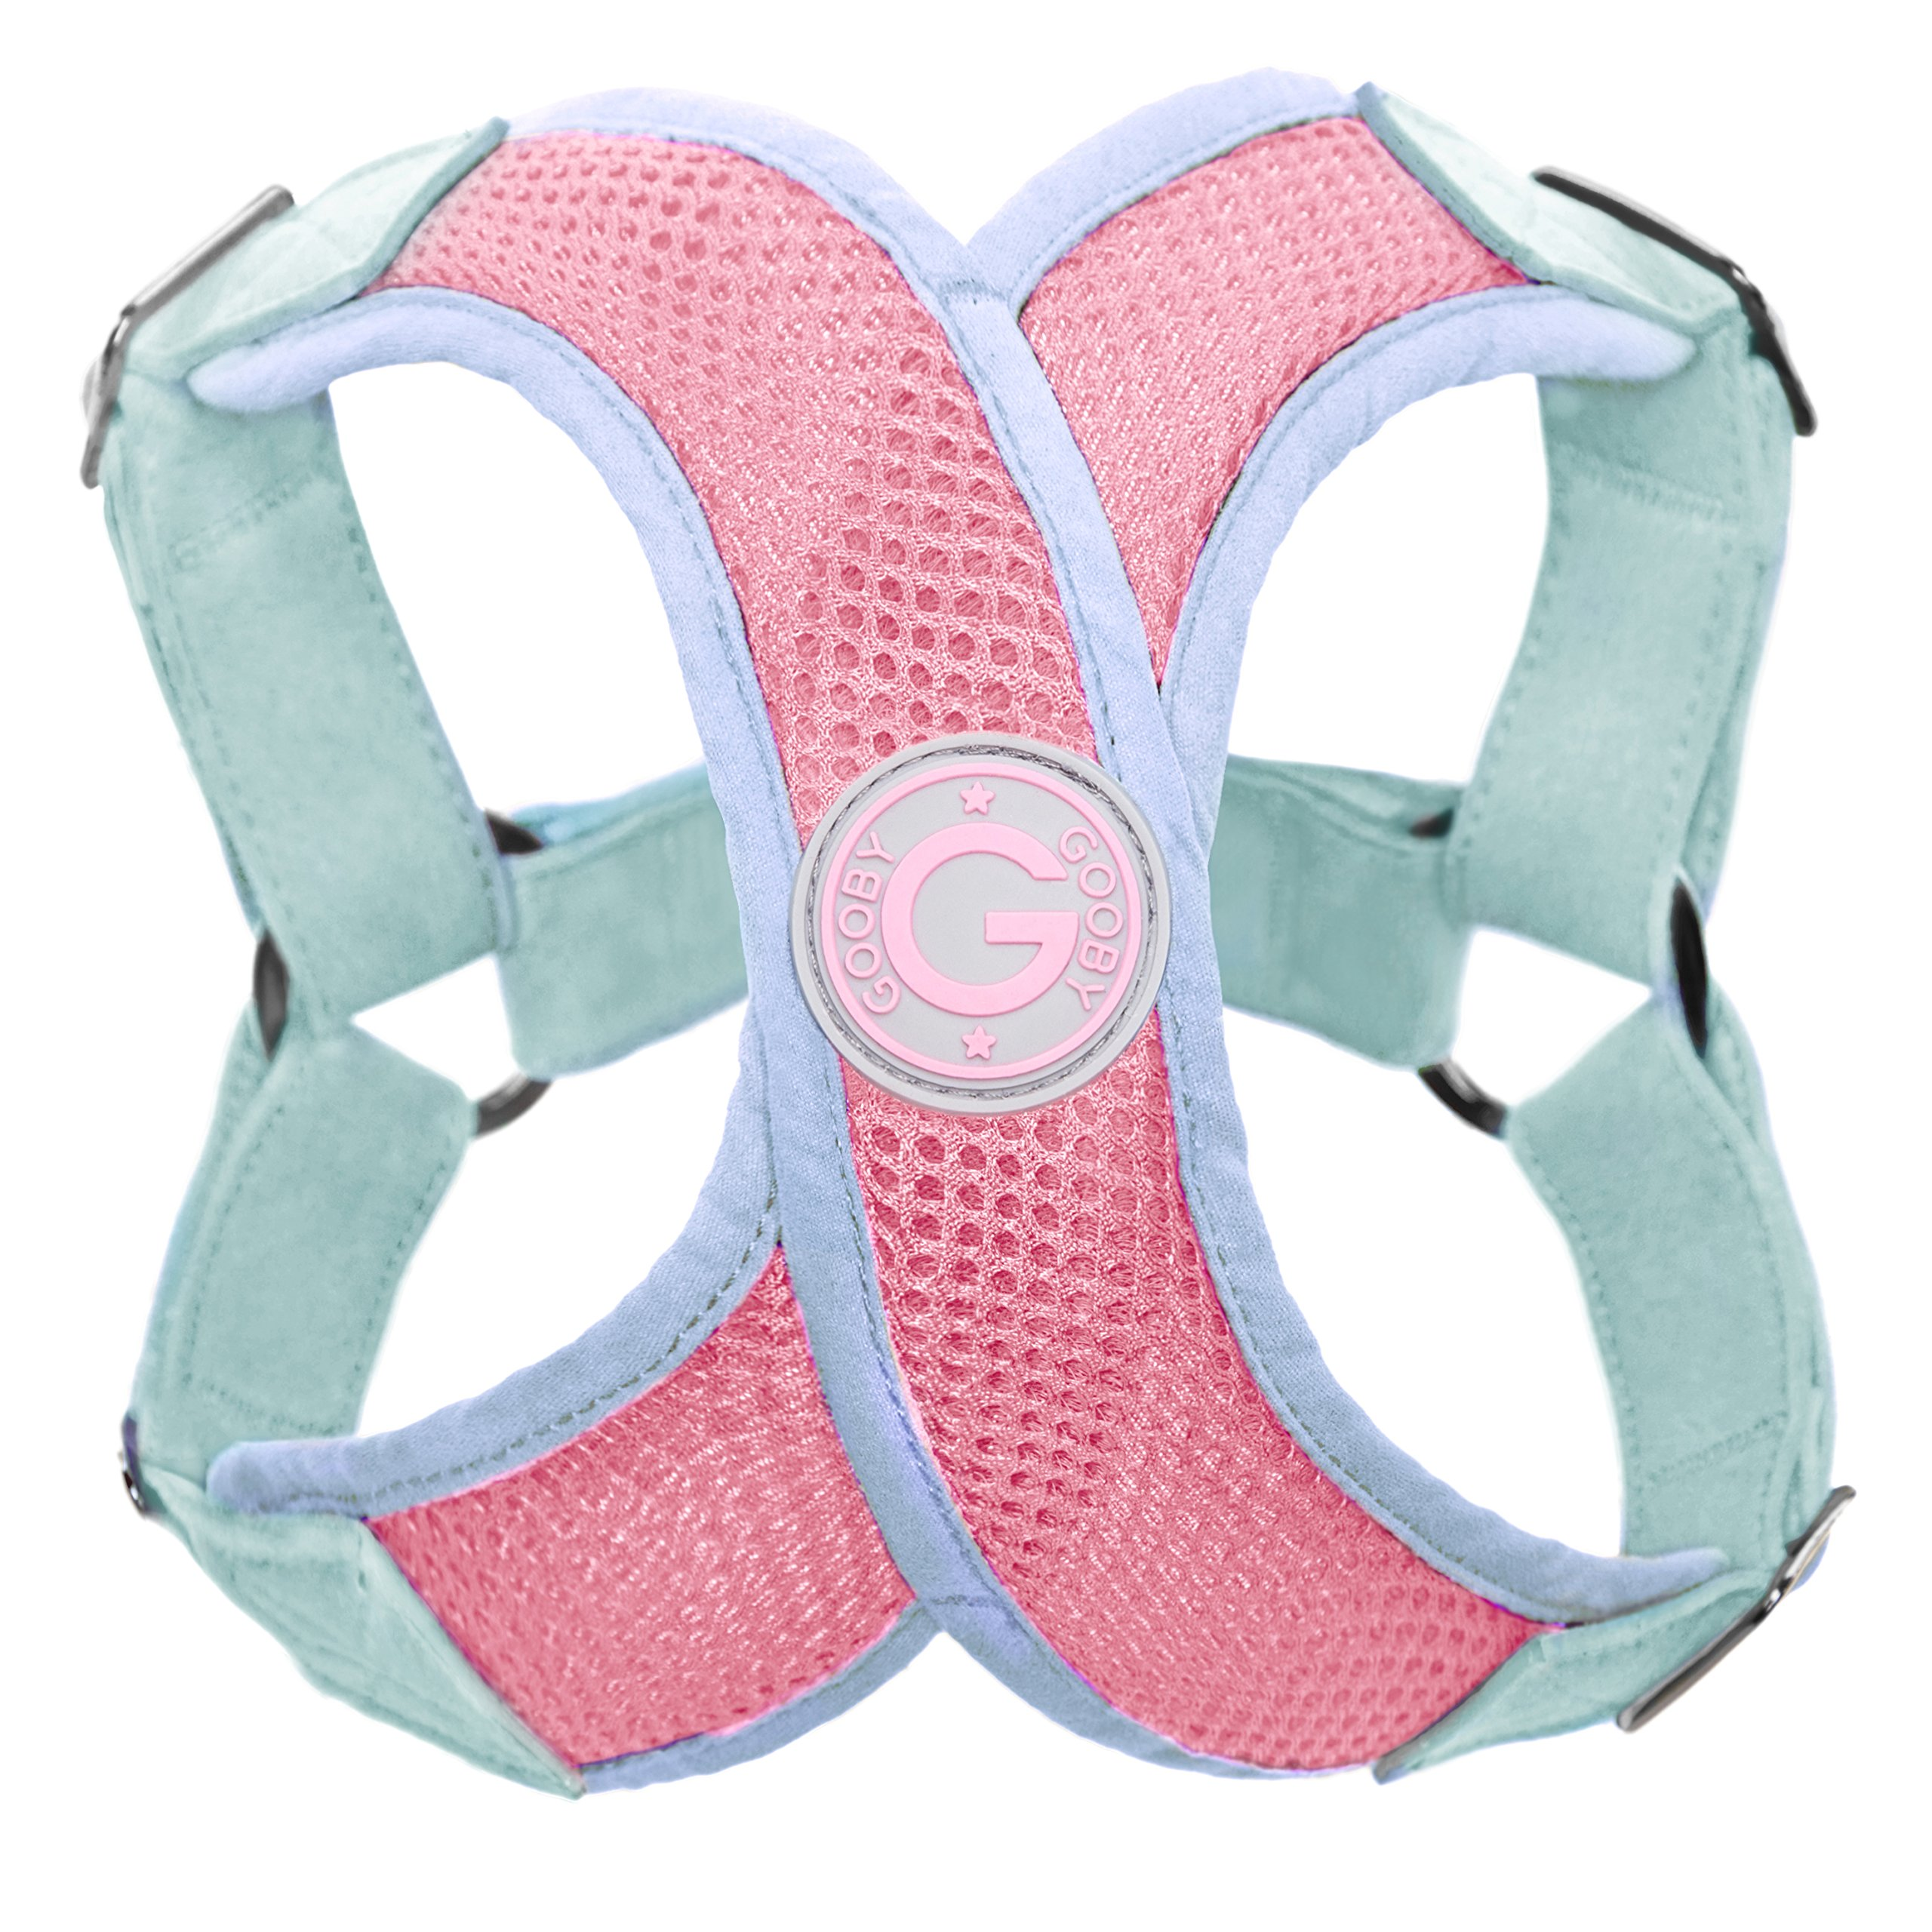 Gooby - Perfect Fit X Harness, Small Dog Choke Free Step-In Harness with Synthetic Lambskin Soft Strap, Pink, Medium